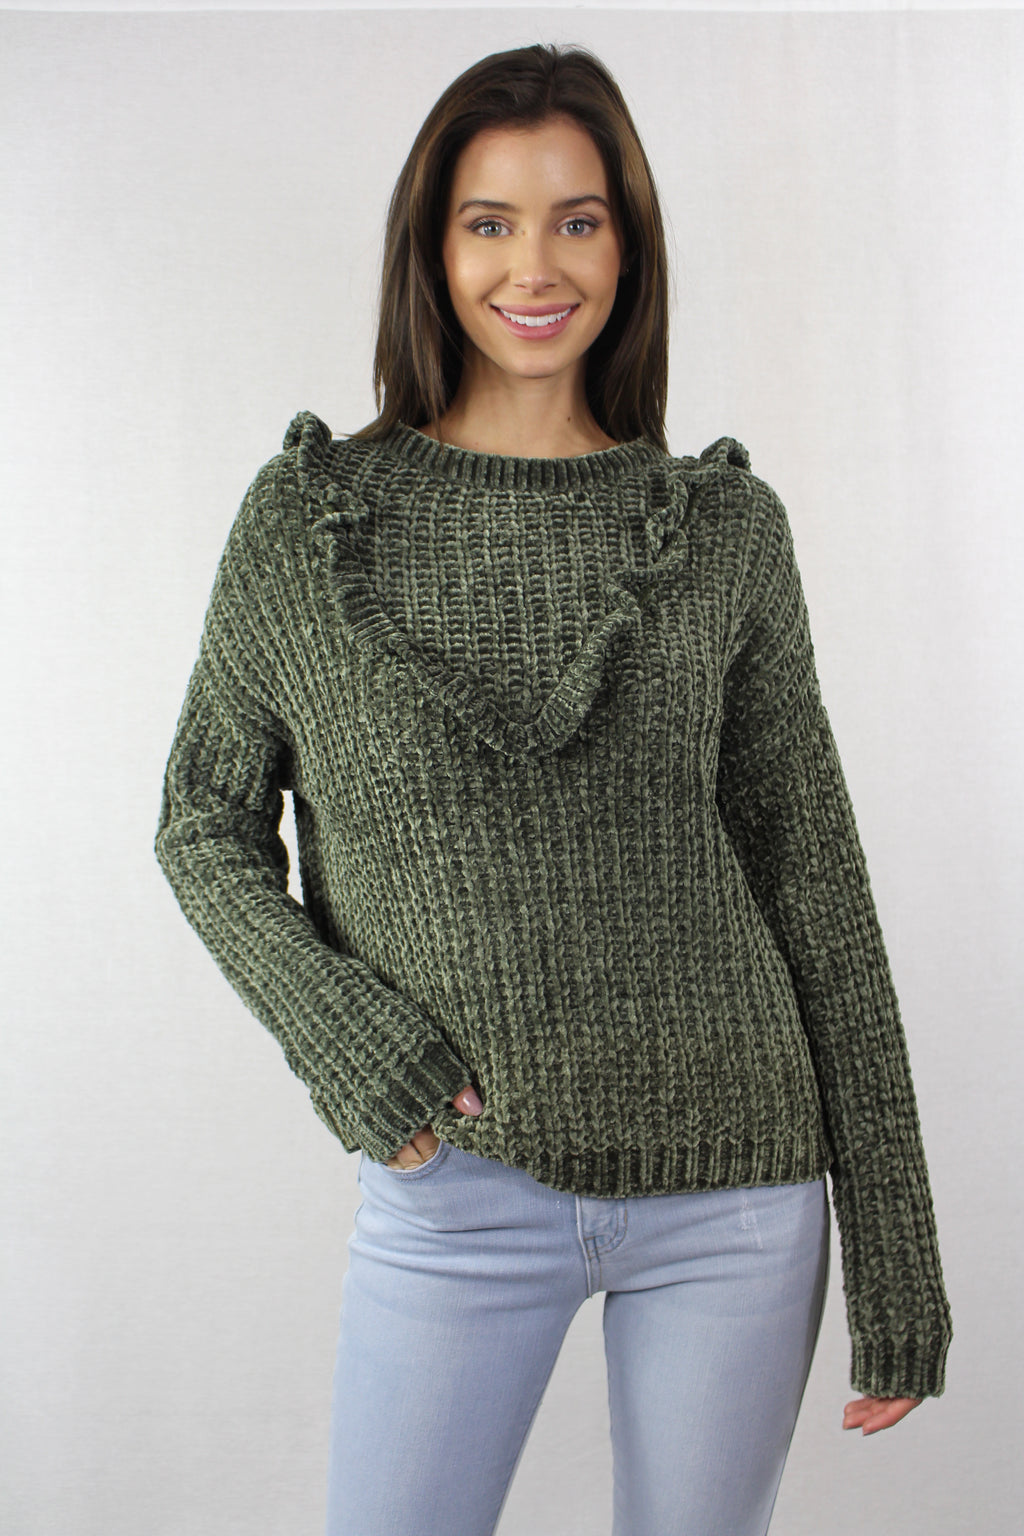 Women's Knitted Sweater With Ruffled Front